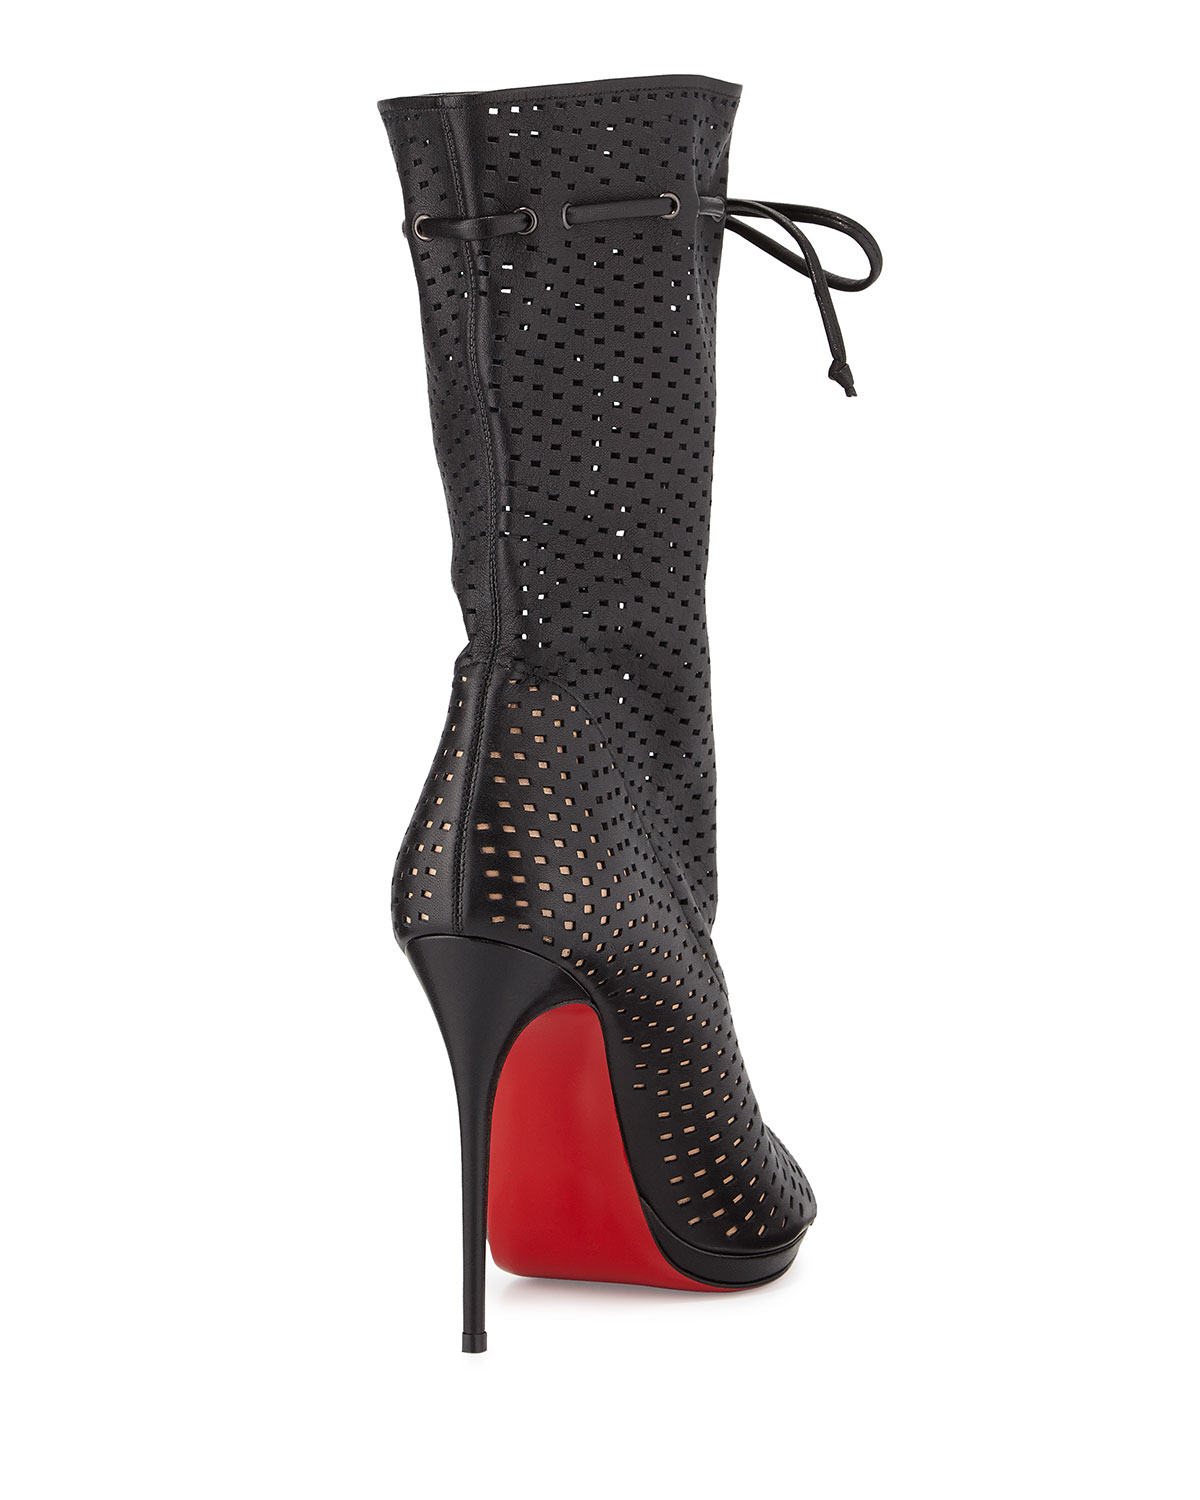 Christian Louboutin Jennifer Perforated Red Sole Boot In